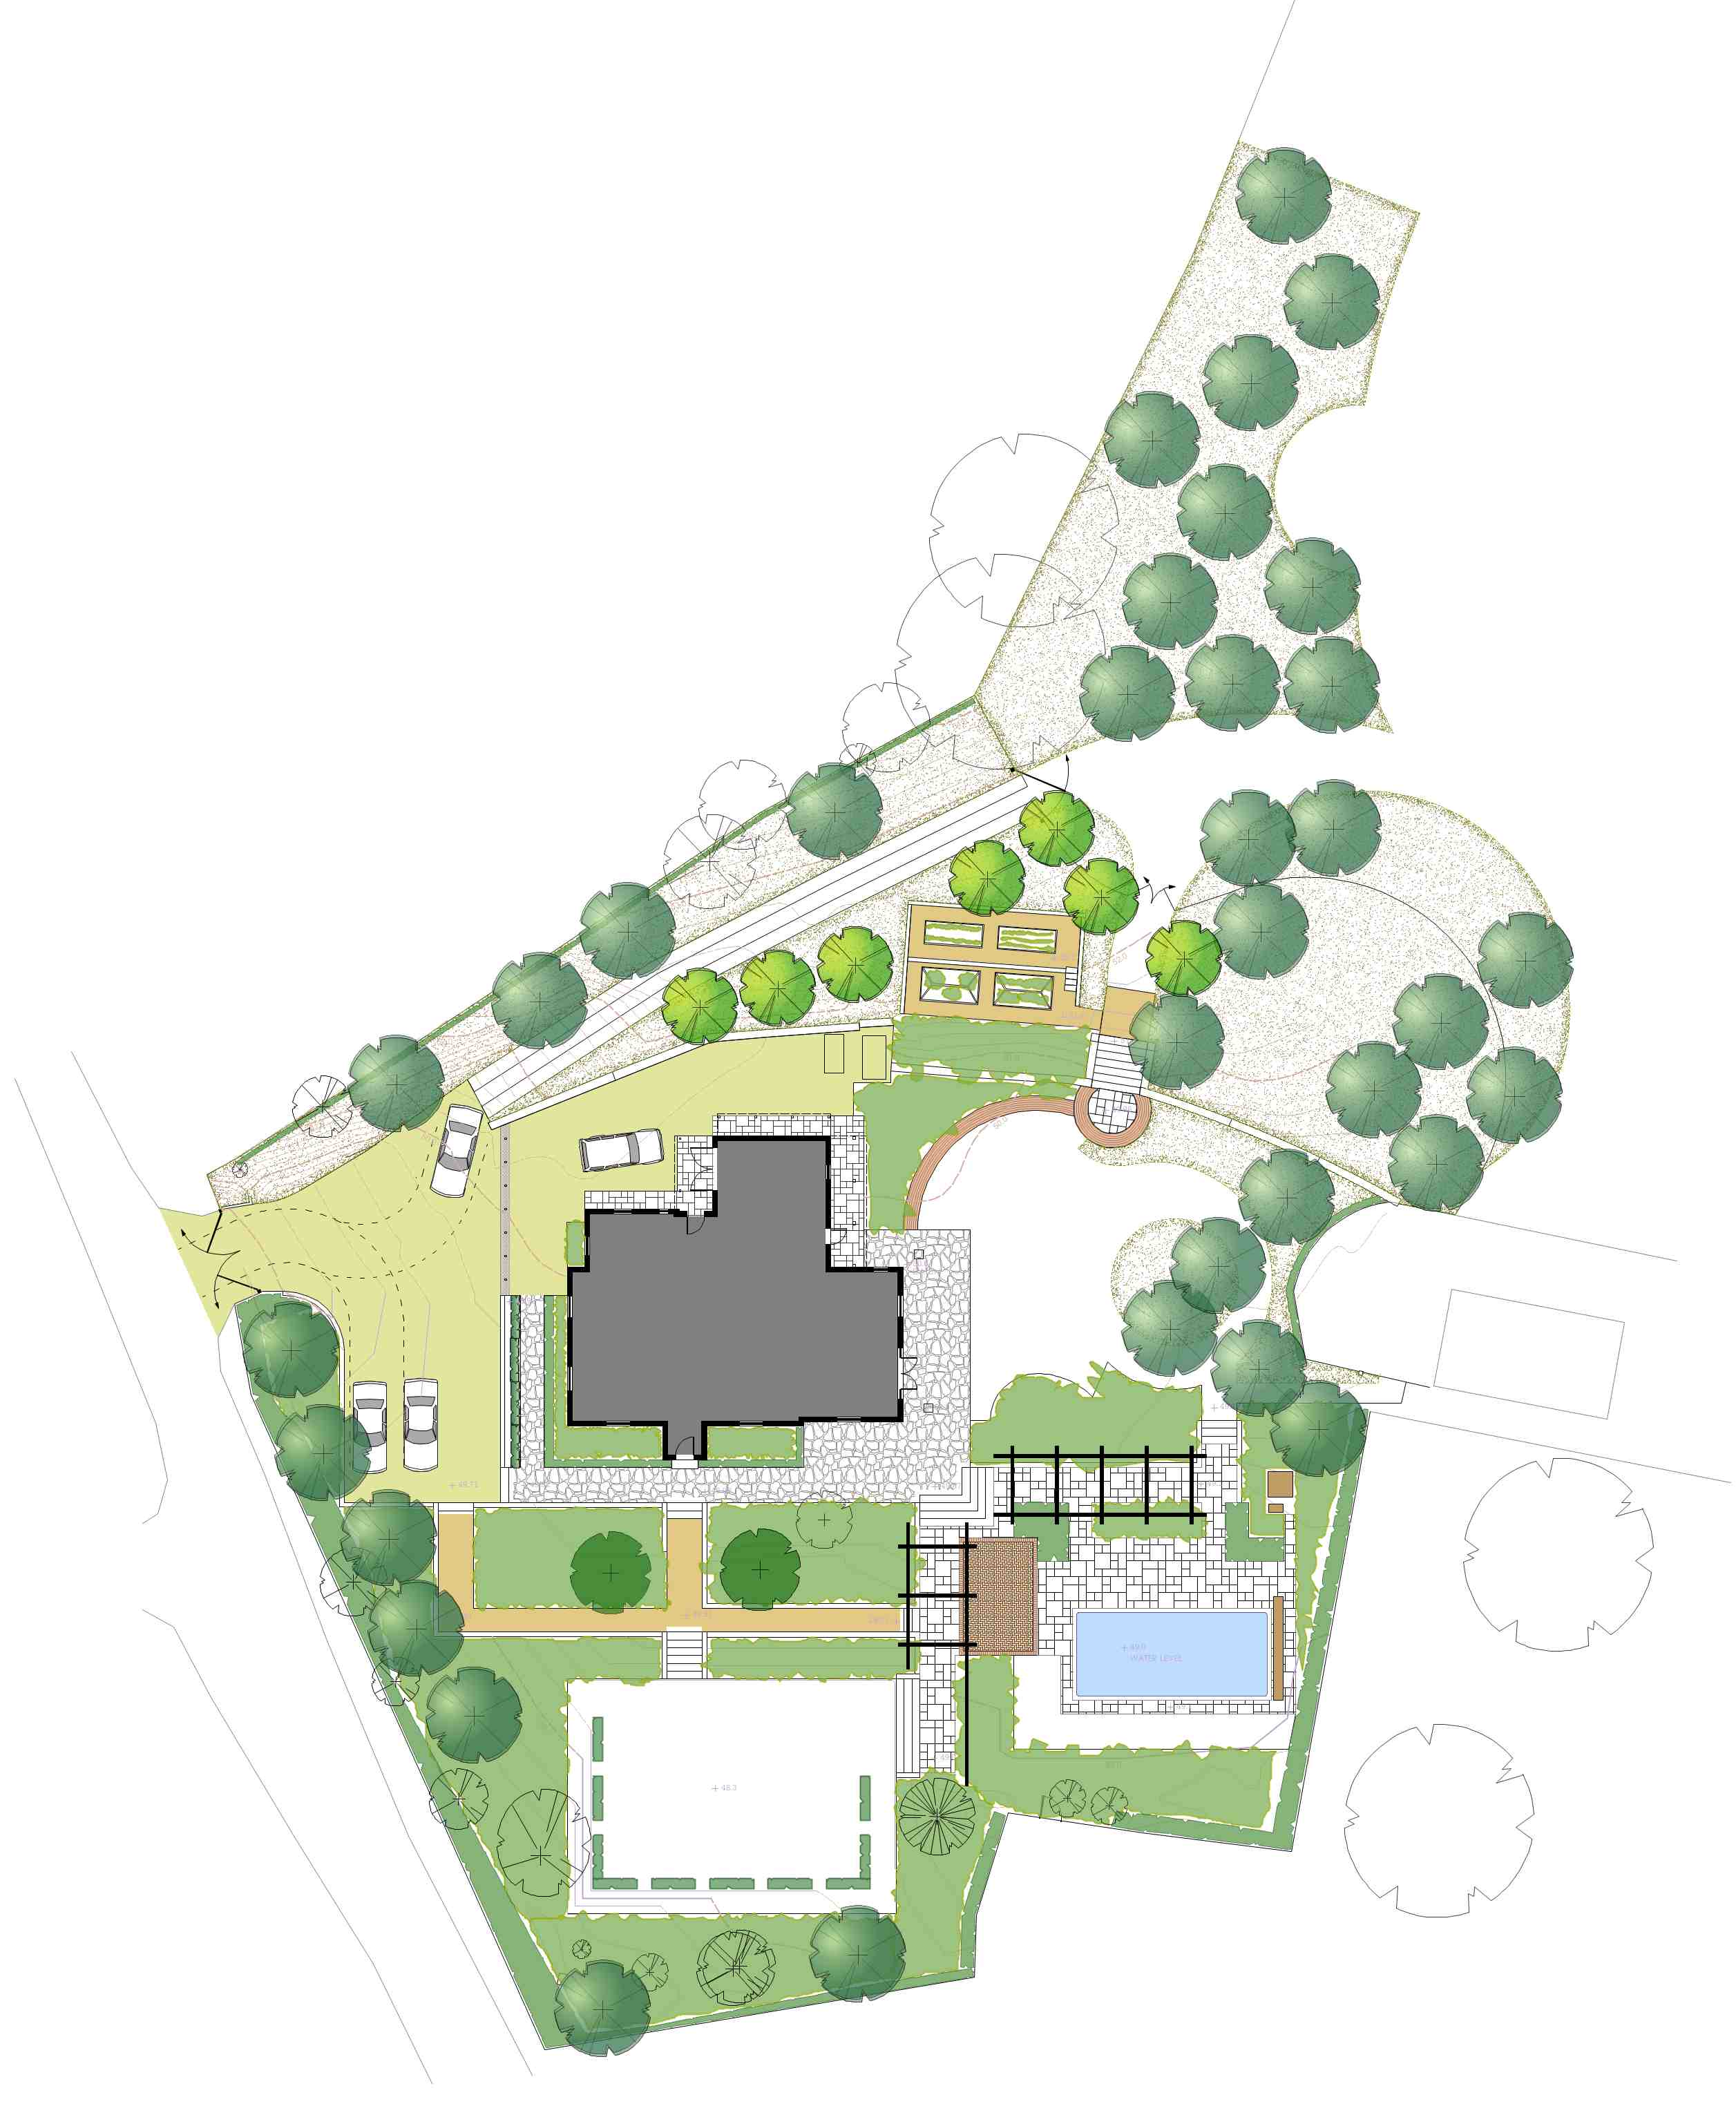 Plan of a large country garden design near Shaftesbury Wiltshire